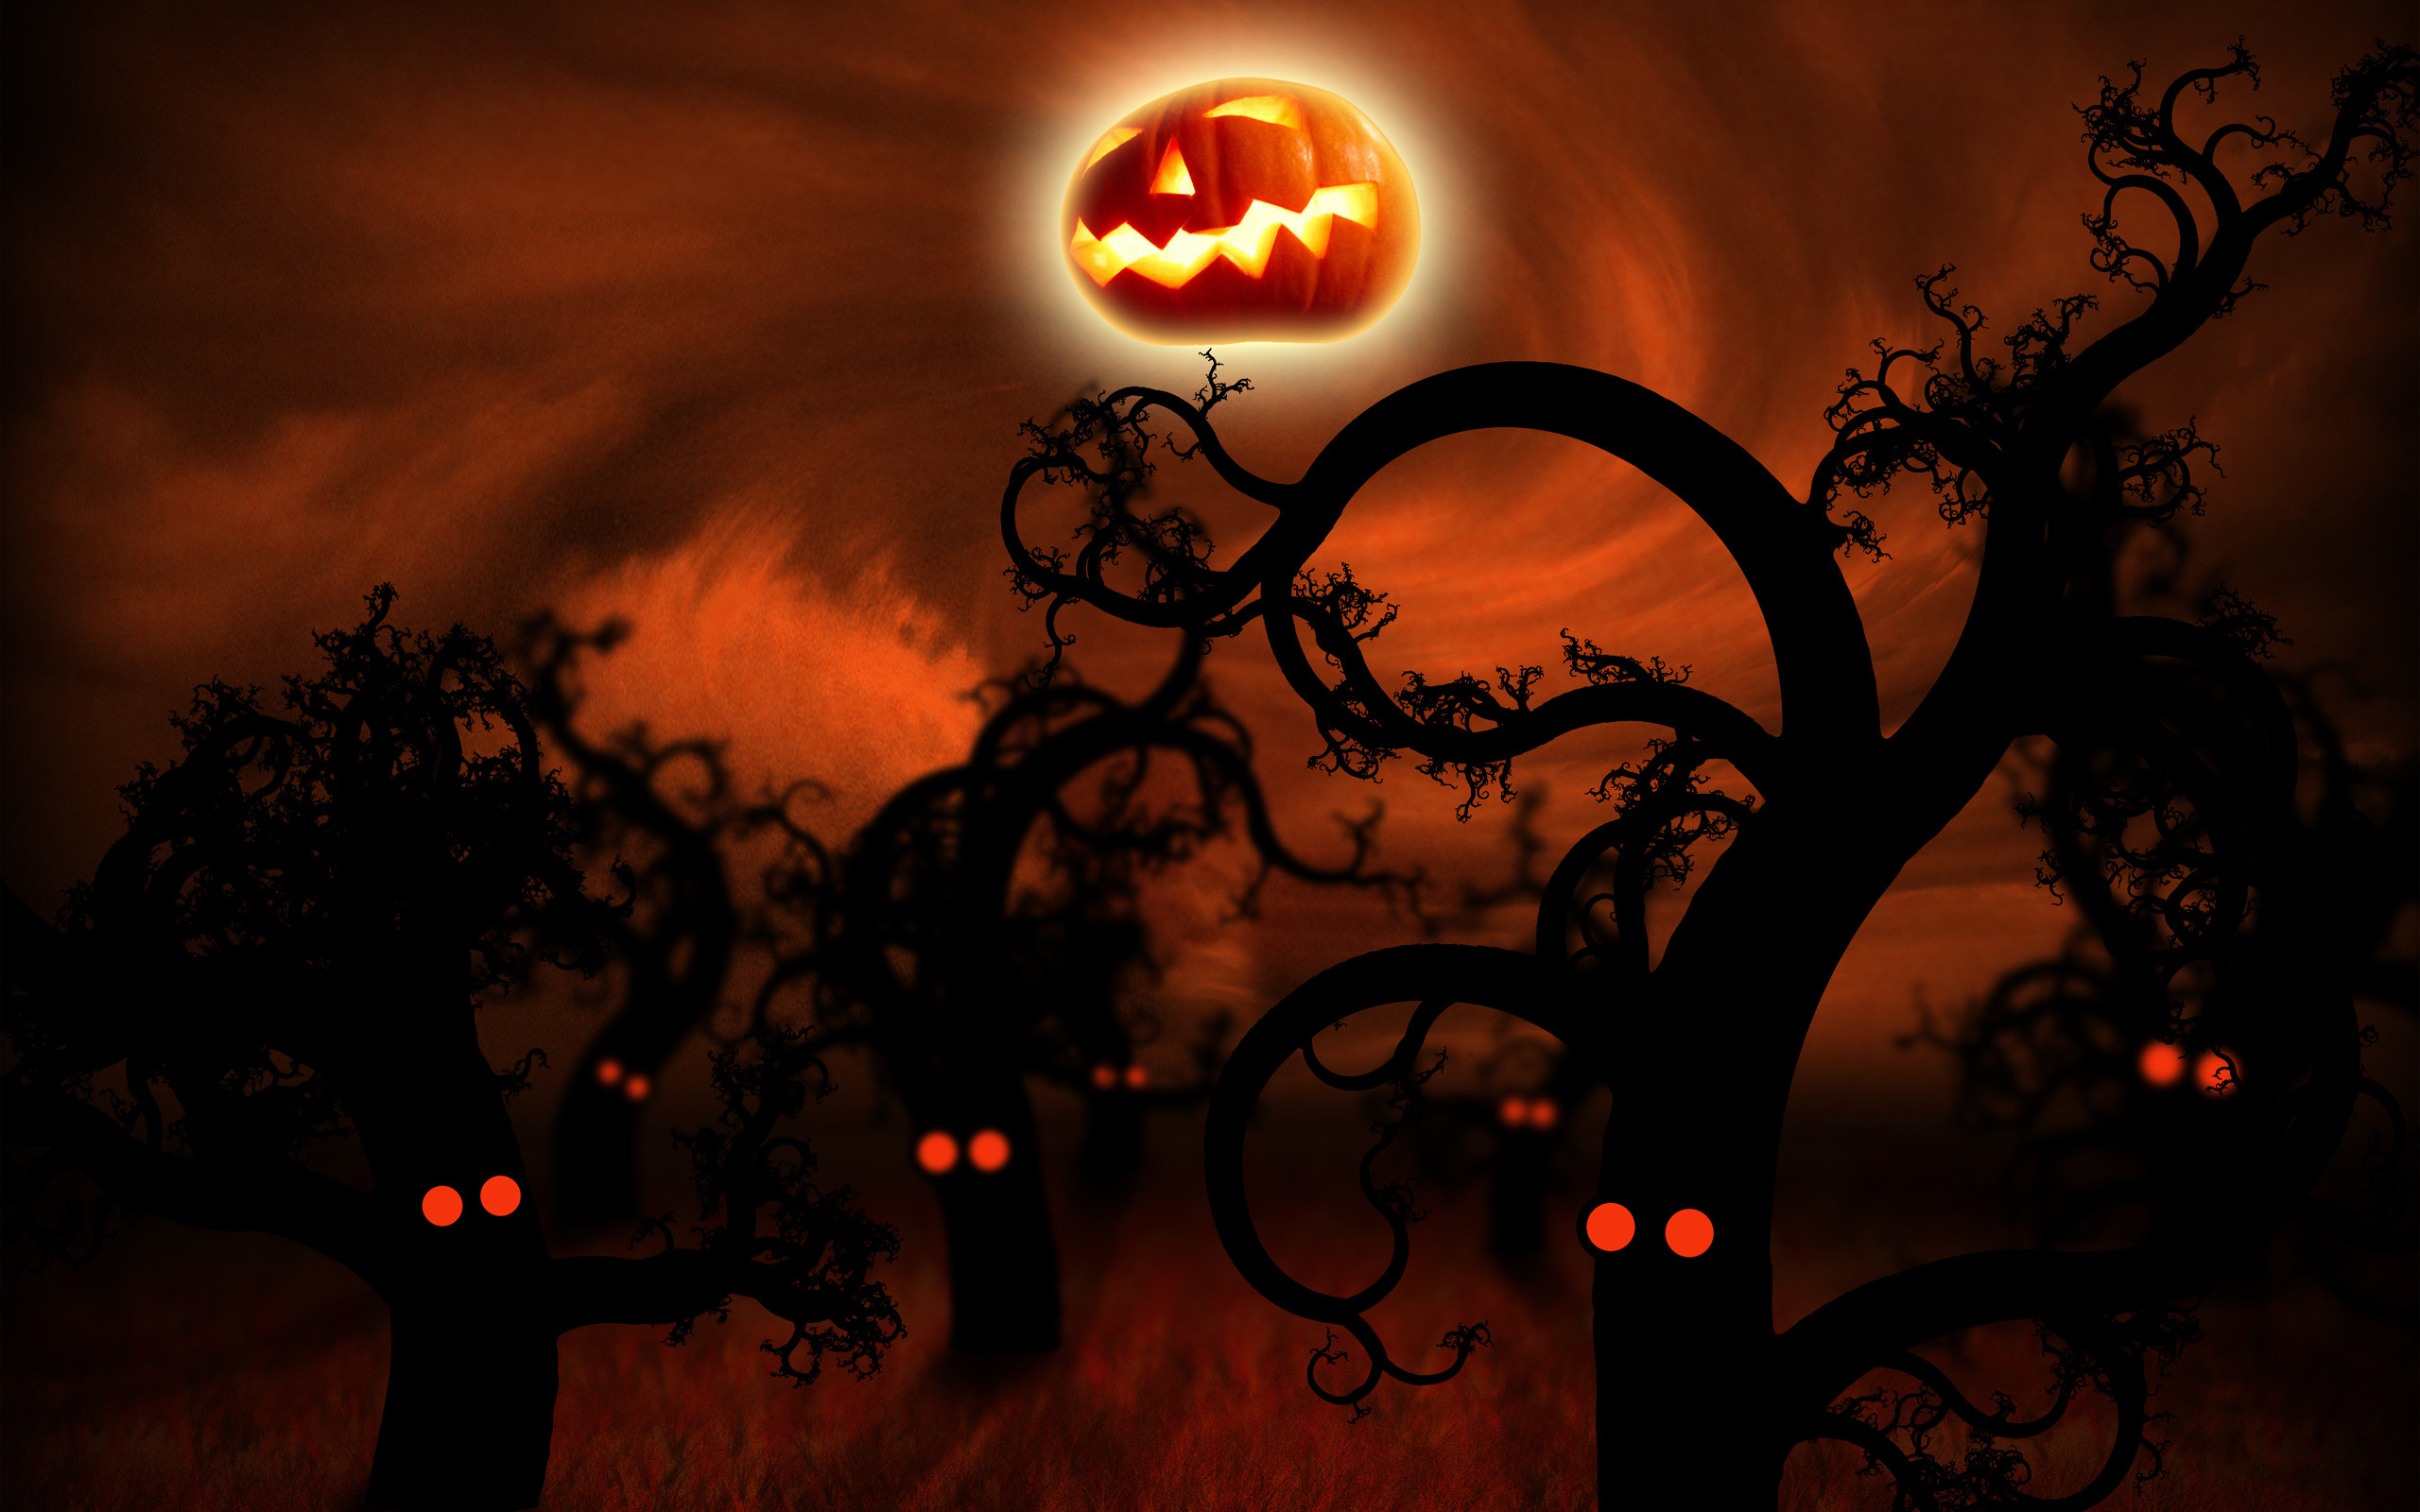 2560x1600 Halloween Wallpapers | Halloween 2013 HD Wallpapers & Desktop .